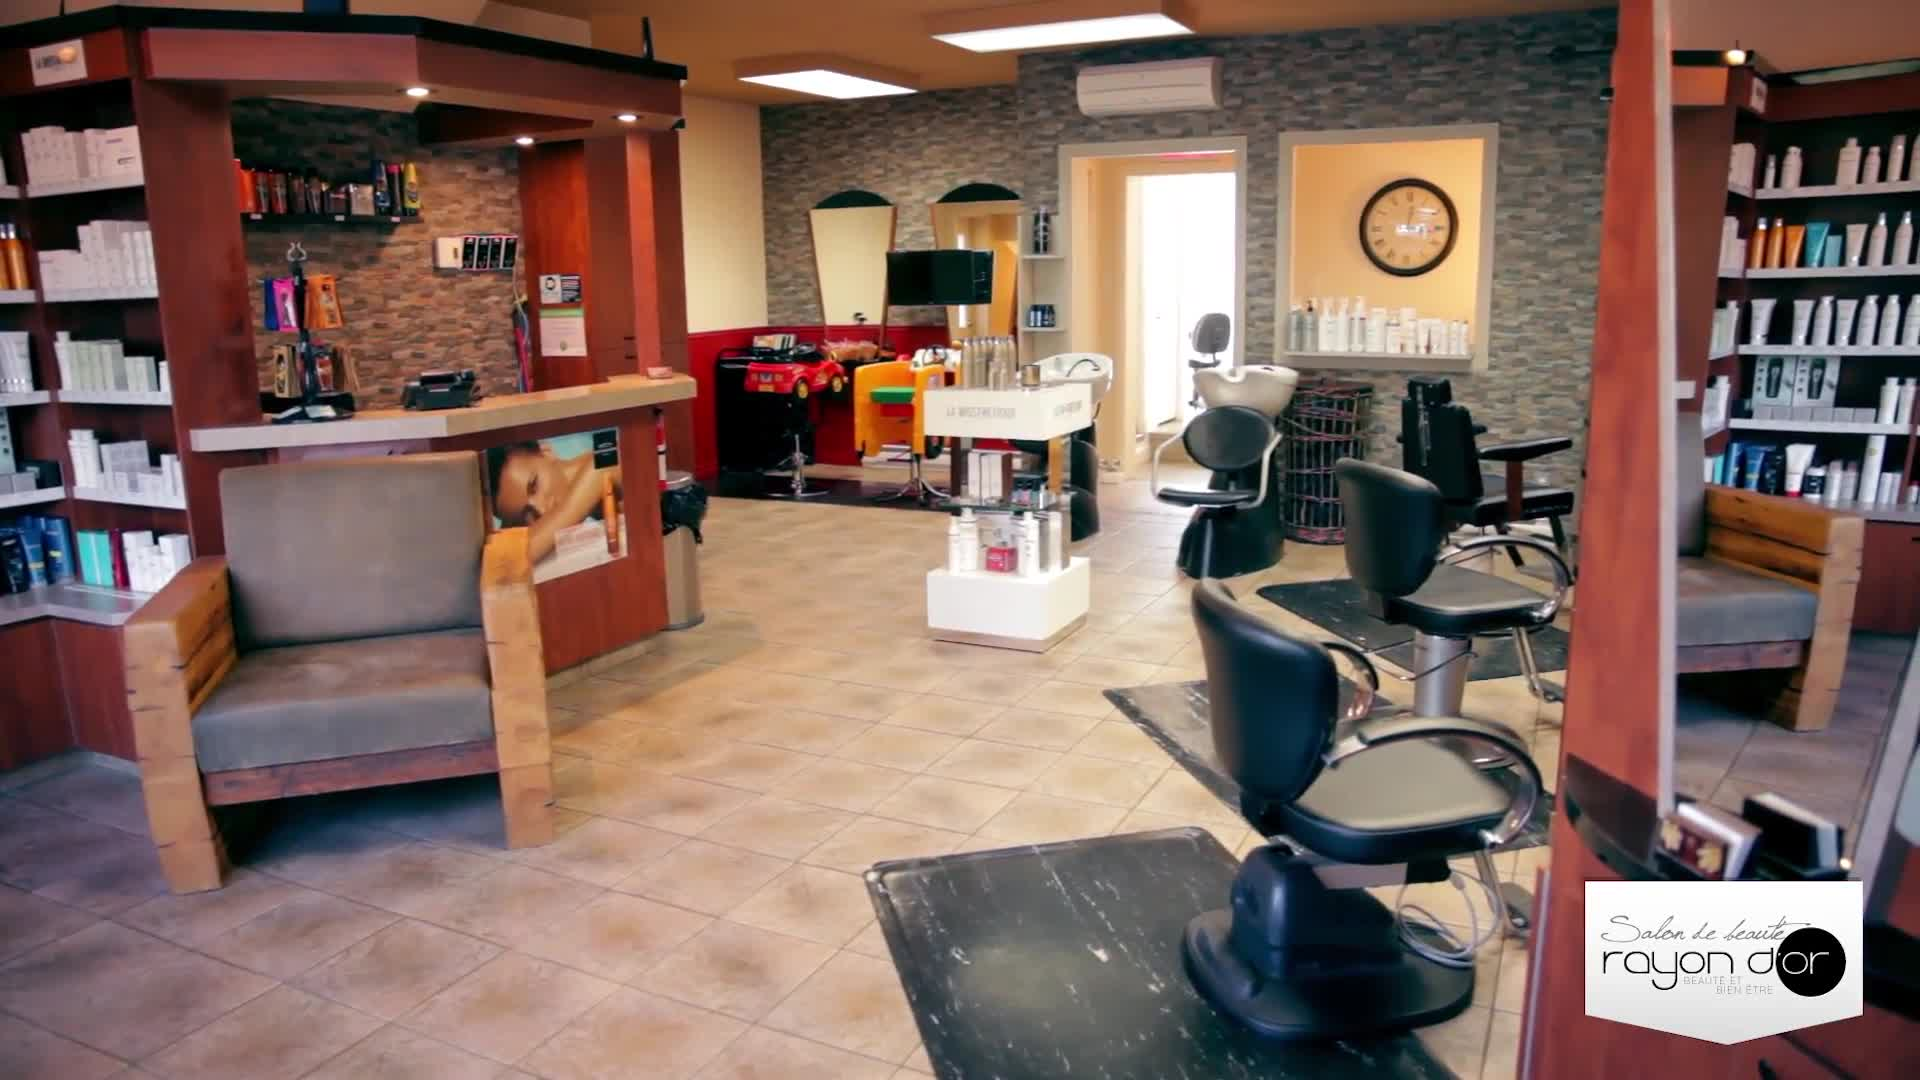 Salon de Beauté Rayon d'Or Inc - Barbiers - 4188784932